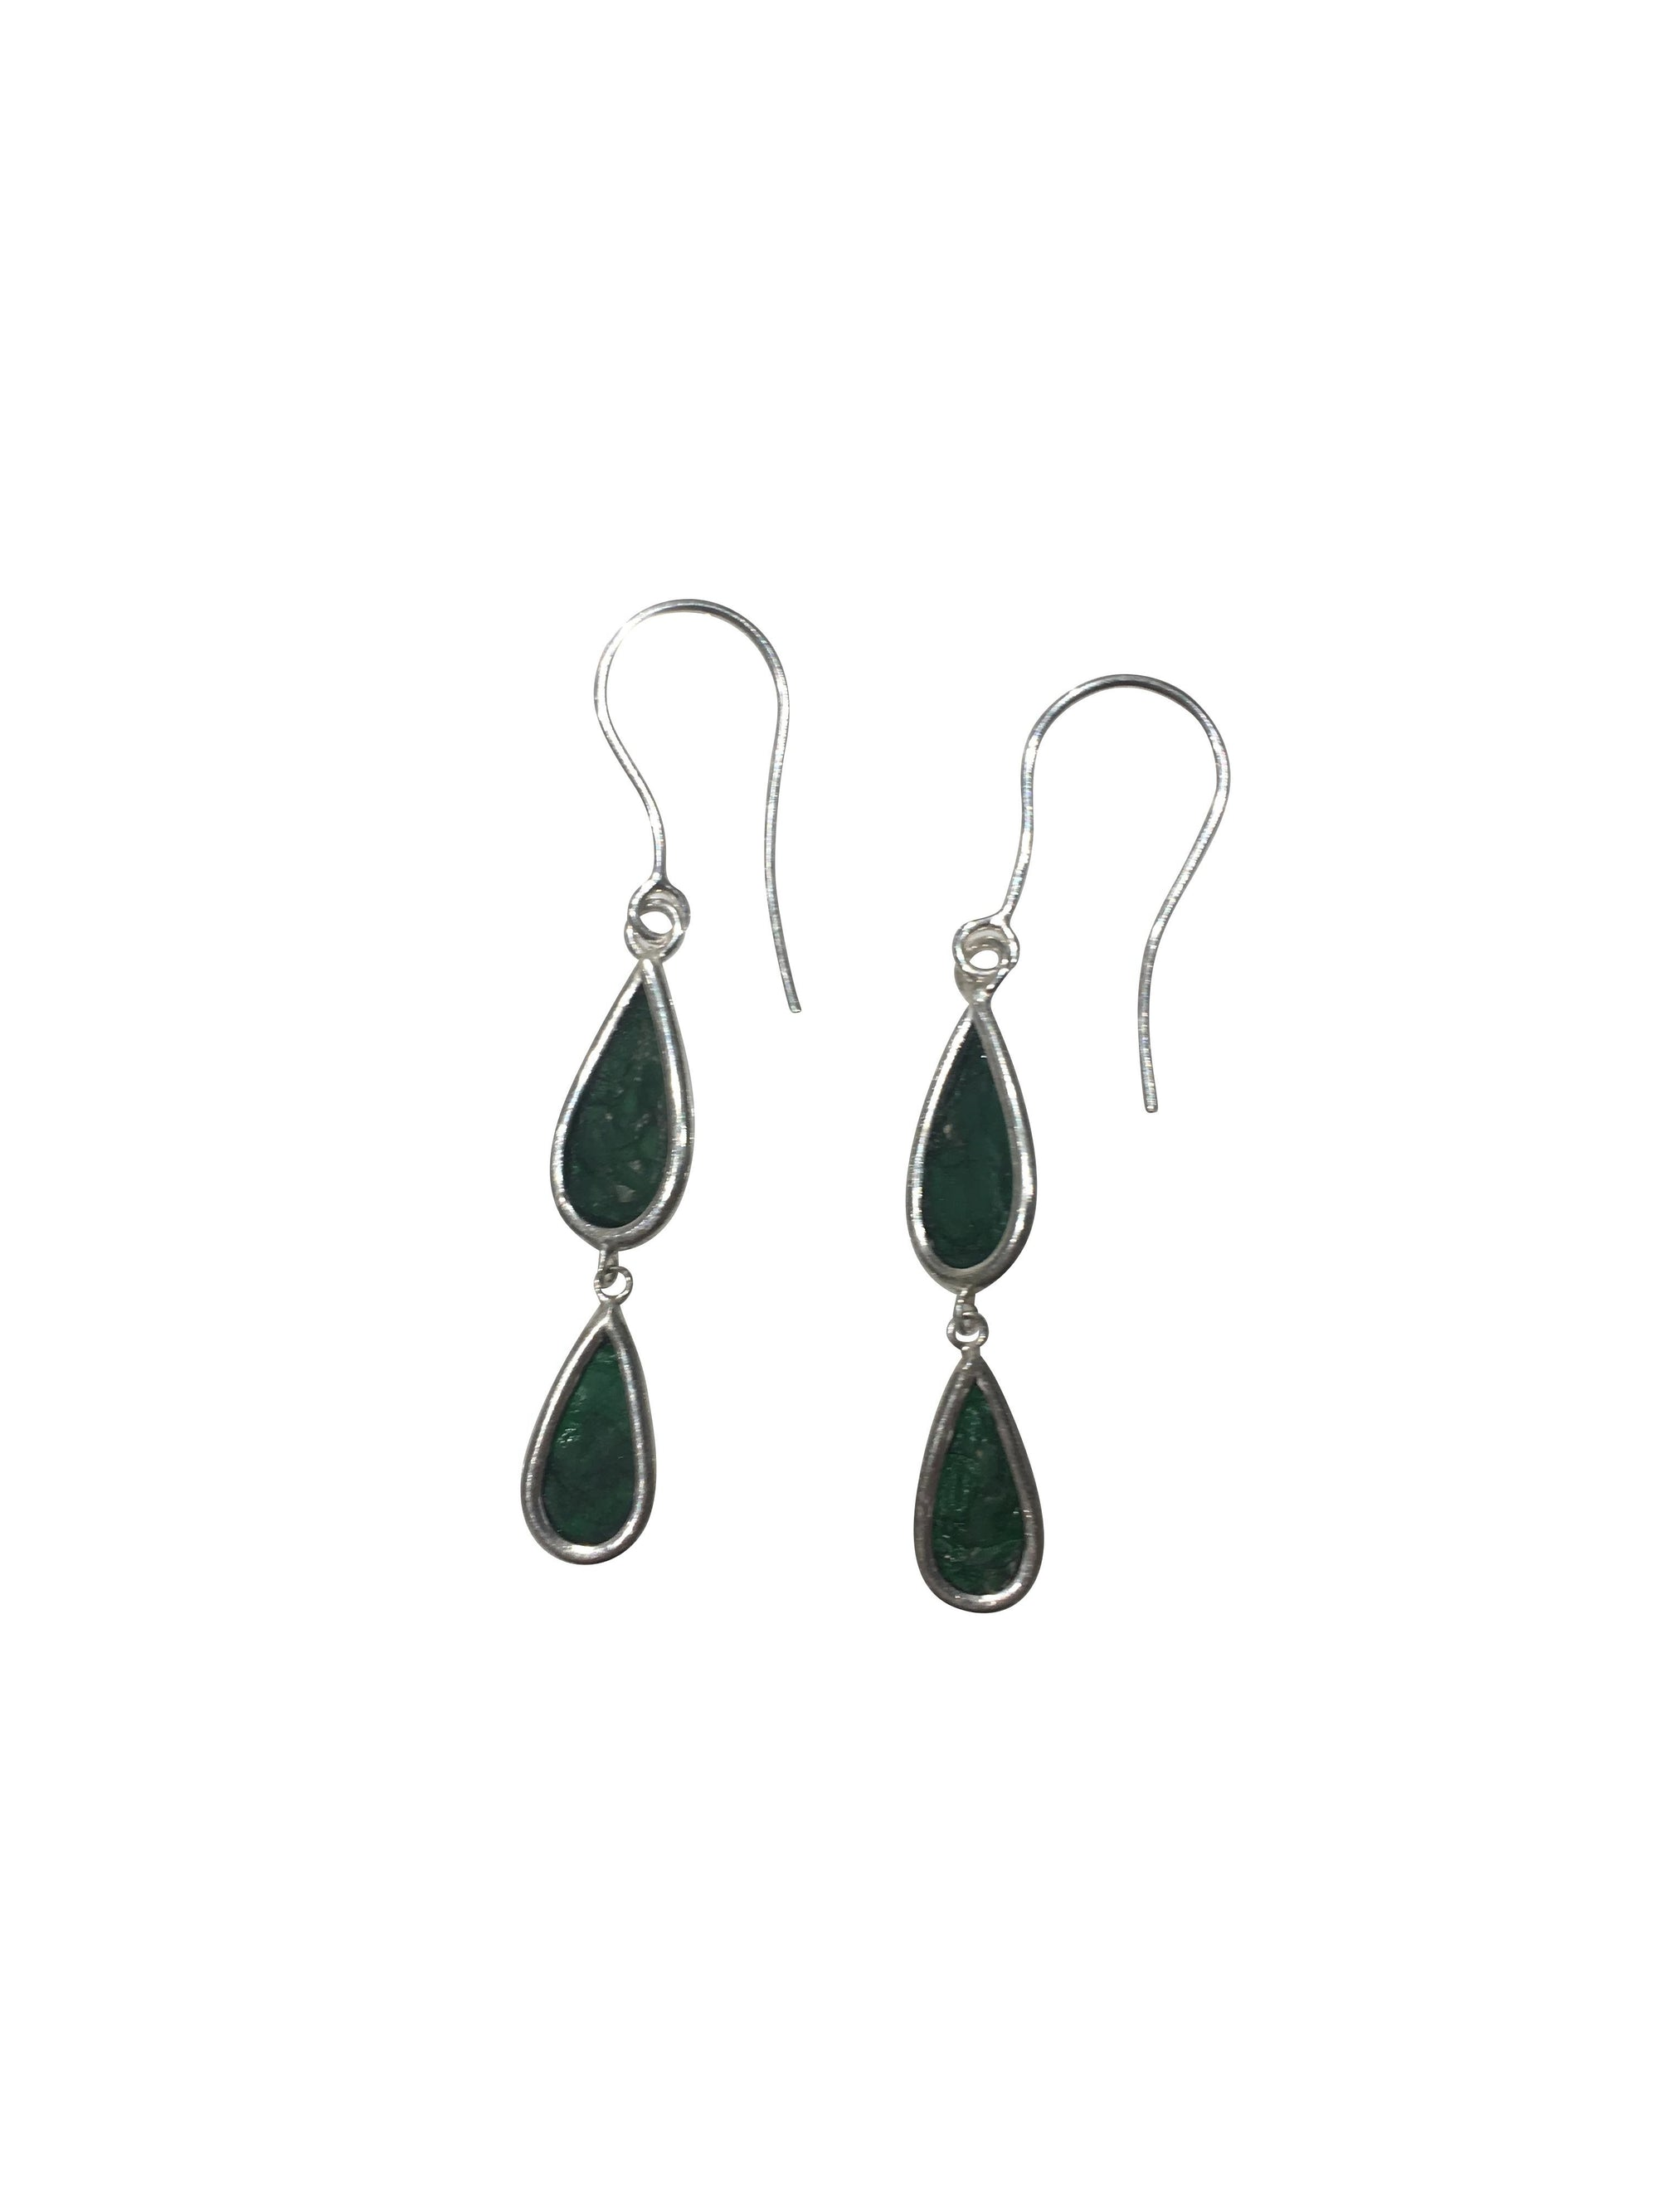 Green Scoby Leather Double Tear Drop Sterling Silver Earrings